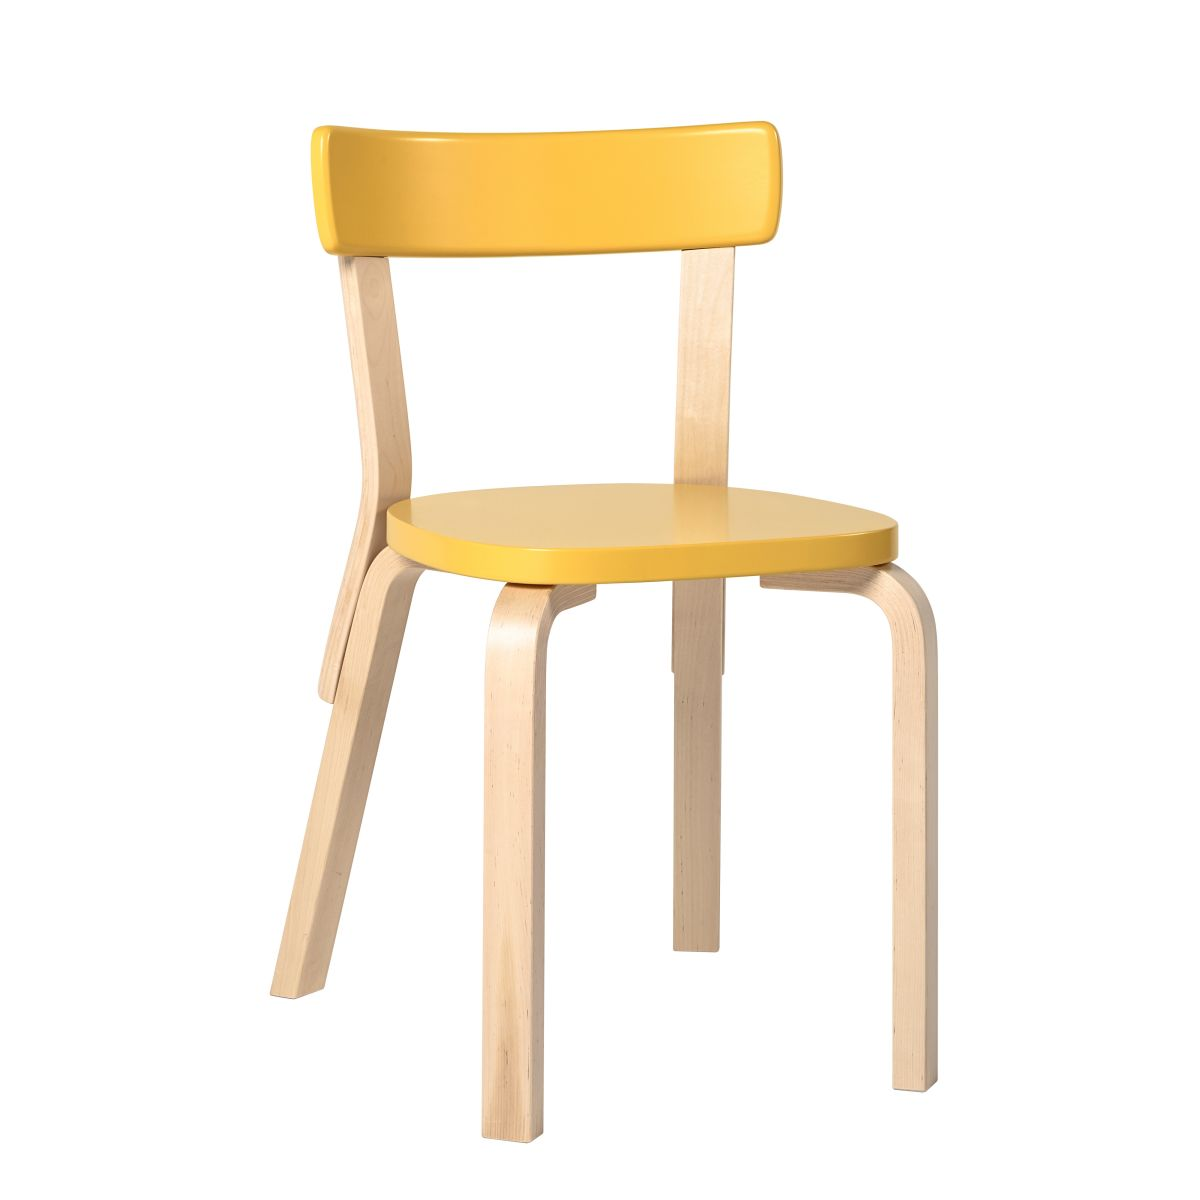 Chair 69 yellow lacquer seat